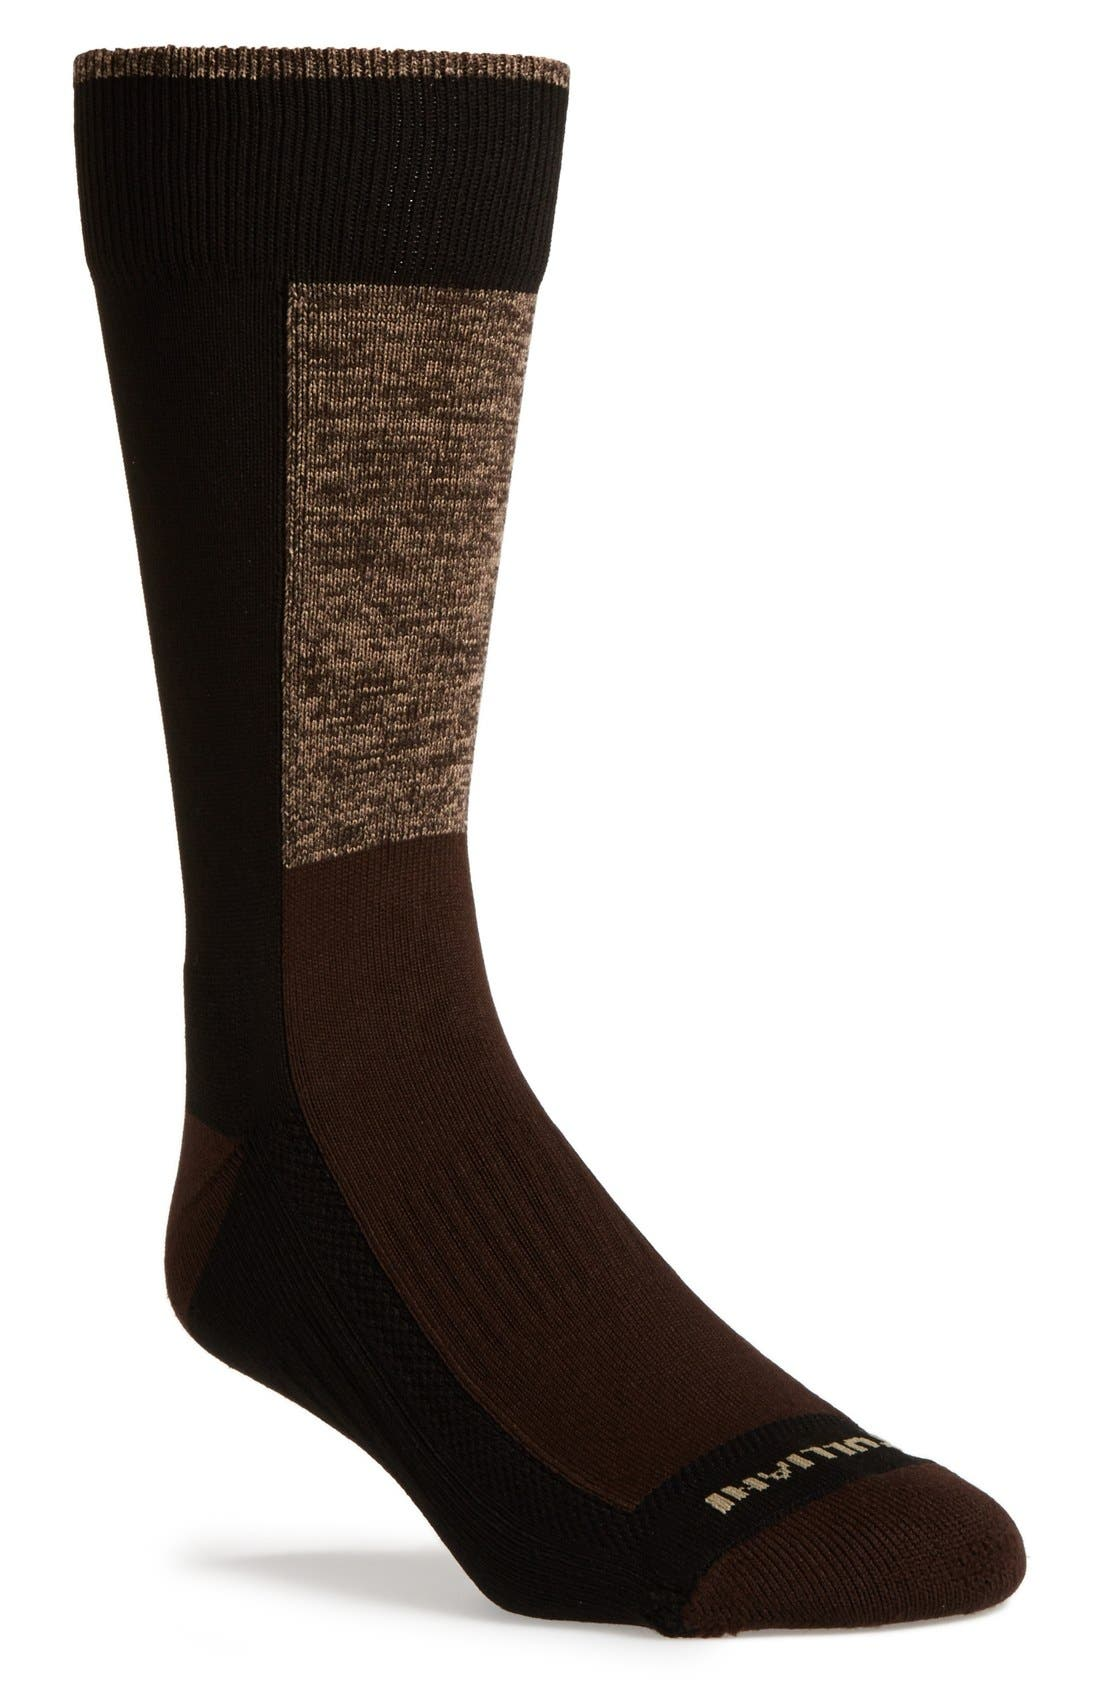 Alternate Image 1 Selected - Remo Tulliani 'Anoki' Socks